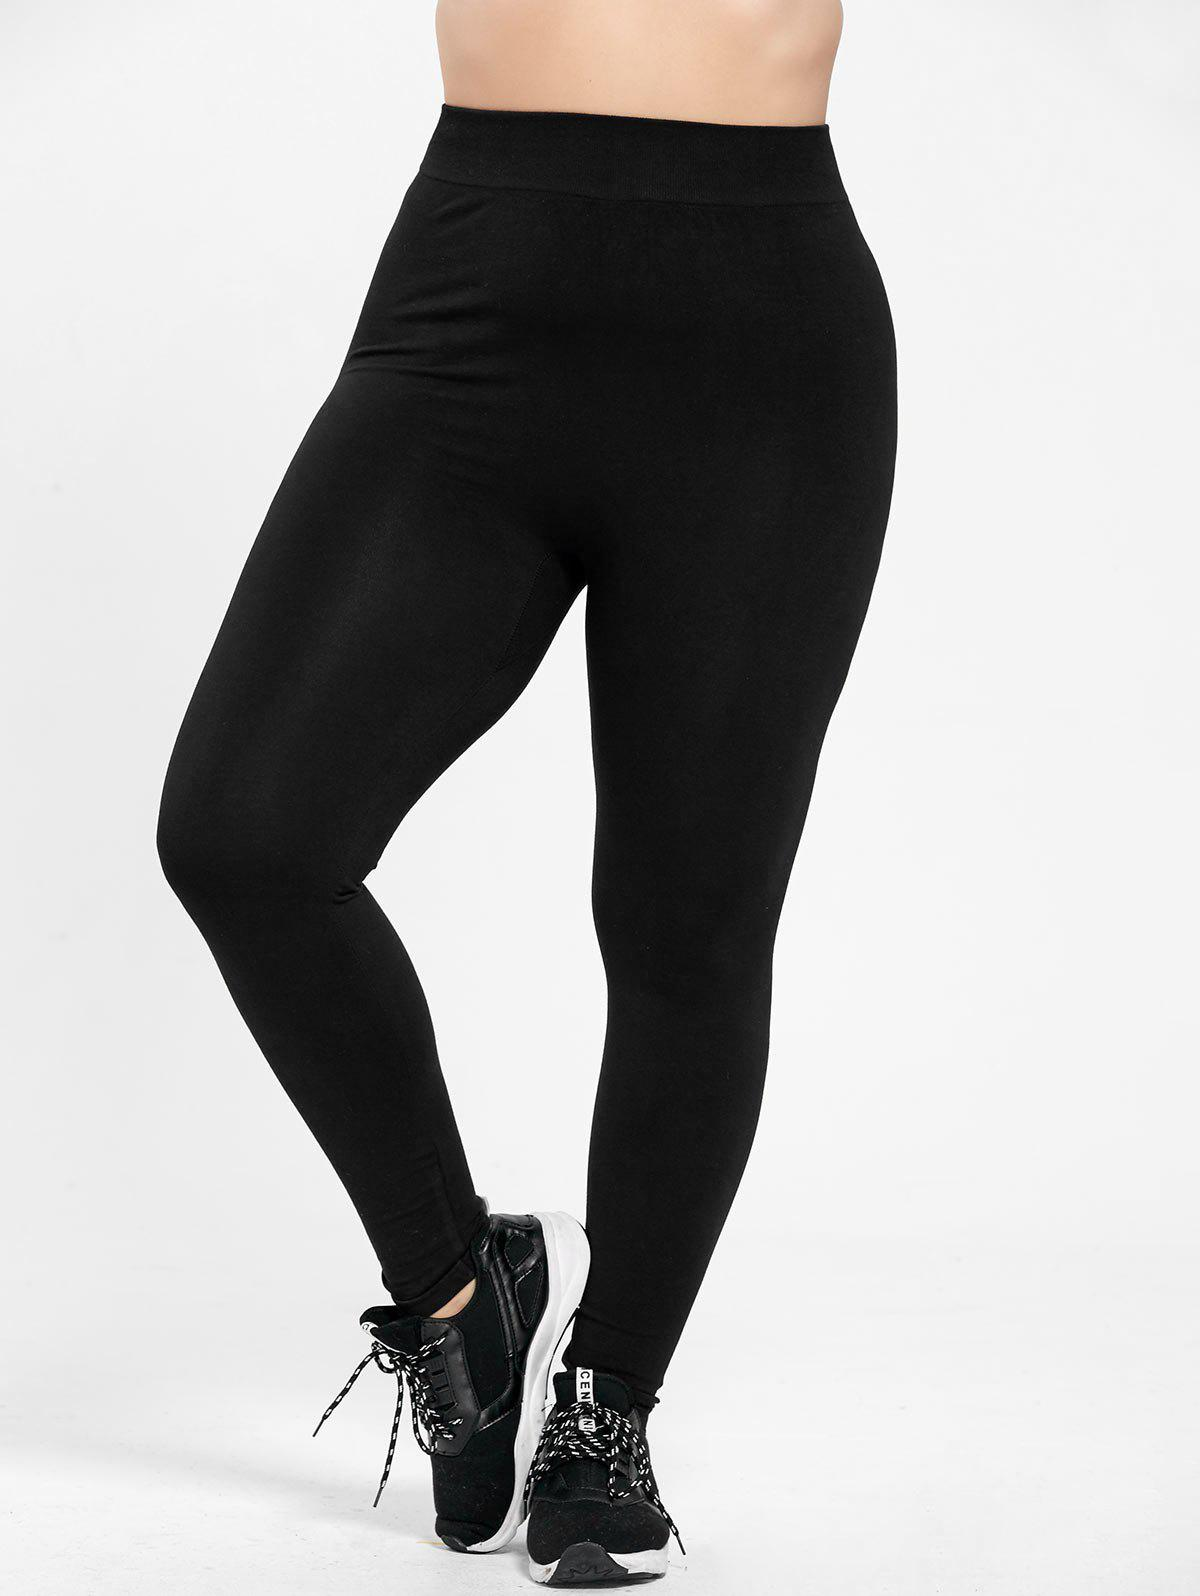 Plus Size High Waist Skinny LeggingsWOMEN<br><br>Size: 2XL; Color: BLACK; Style: Casual; Length: Normal; Material: Cotton,Polyester; Fit Type: Skinny; Waist Type: High; Closure Type: Elastic Waist; Pattern Type: Solid; Pant Style: Pencil Pants; Weight: 0.2900kg; Package Contents: 1 x Leggings;